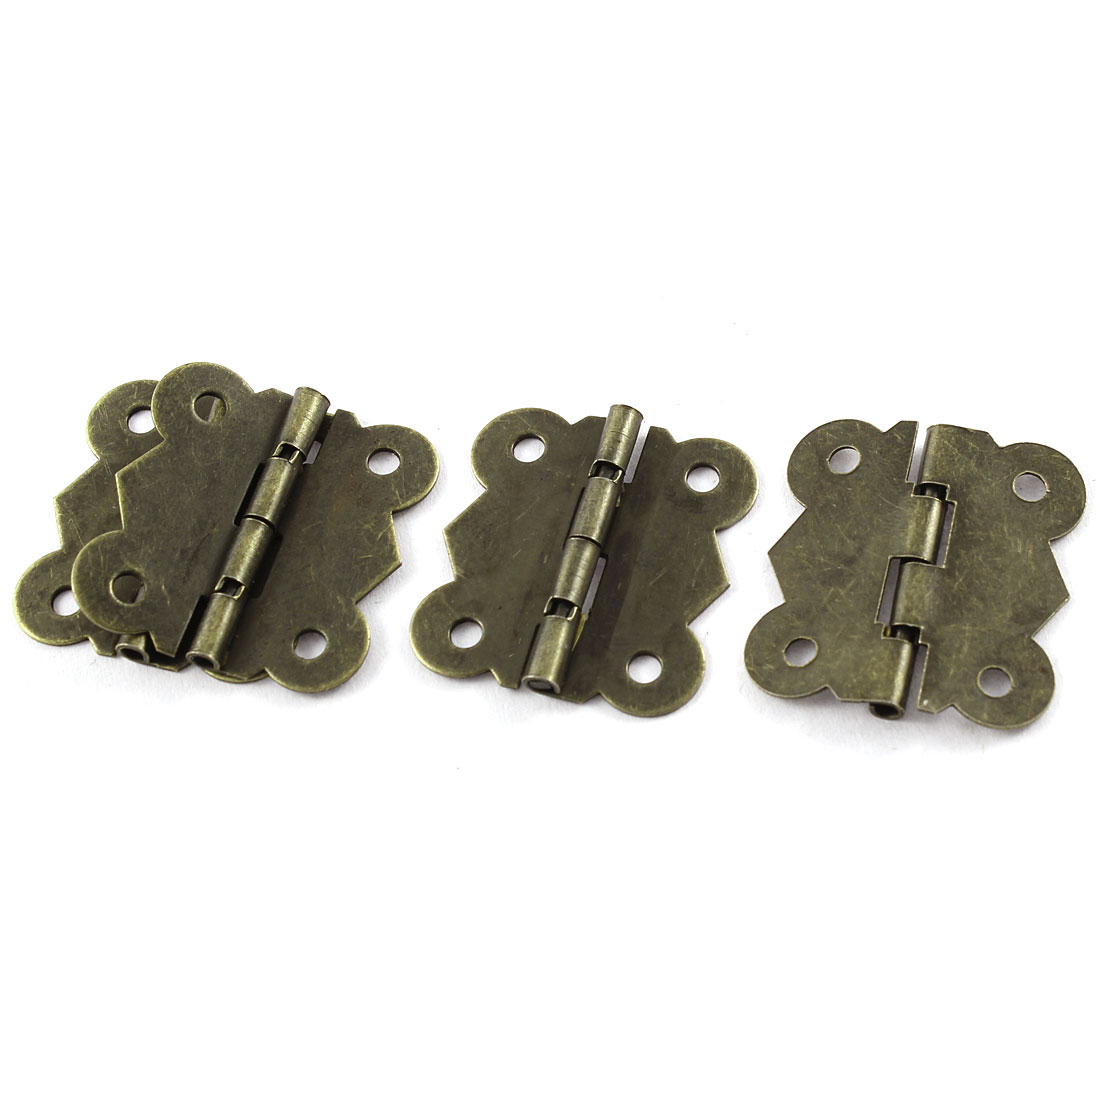 4 Pcs/lot Bronze Tone Butterfly Style DIY Repair Cabinet Drawer Door Hinge(China (Mainland))